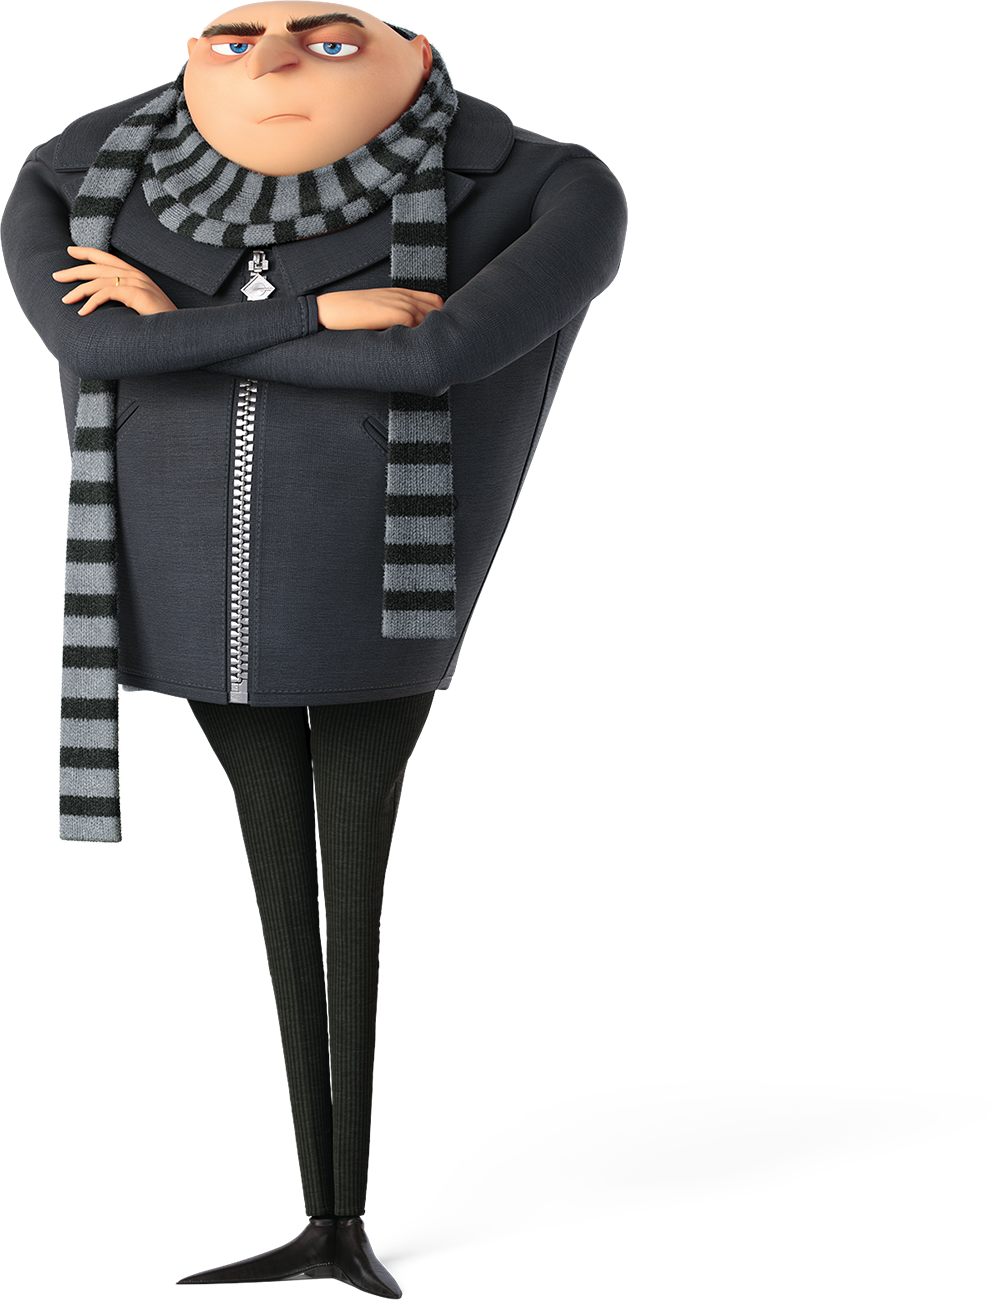 category despicable me characters